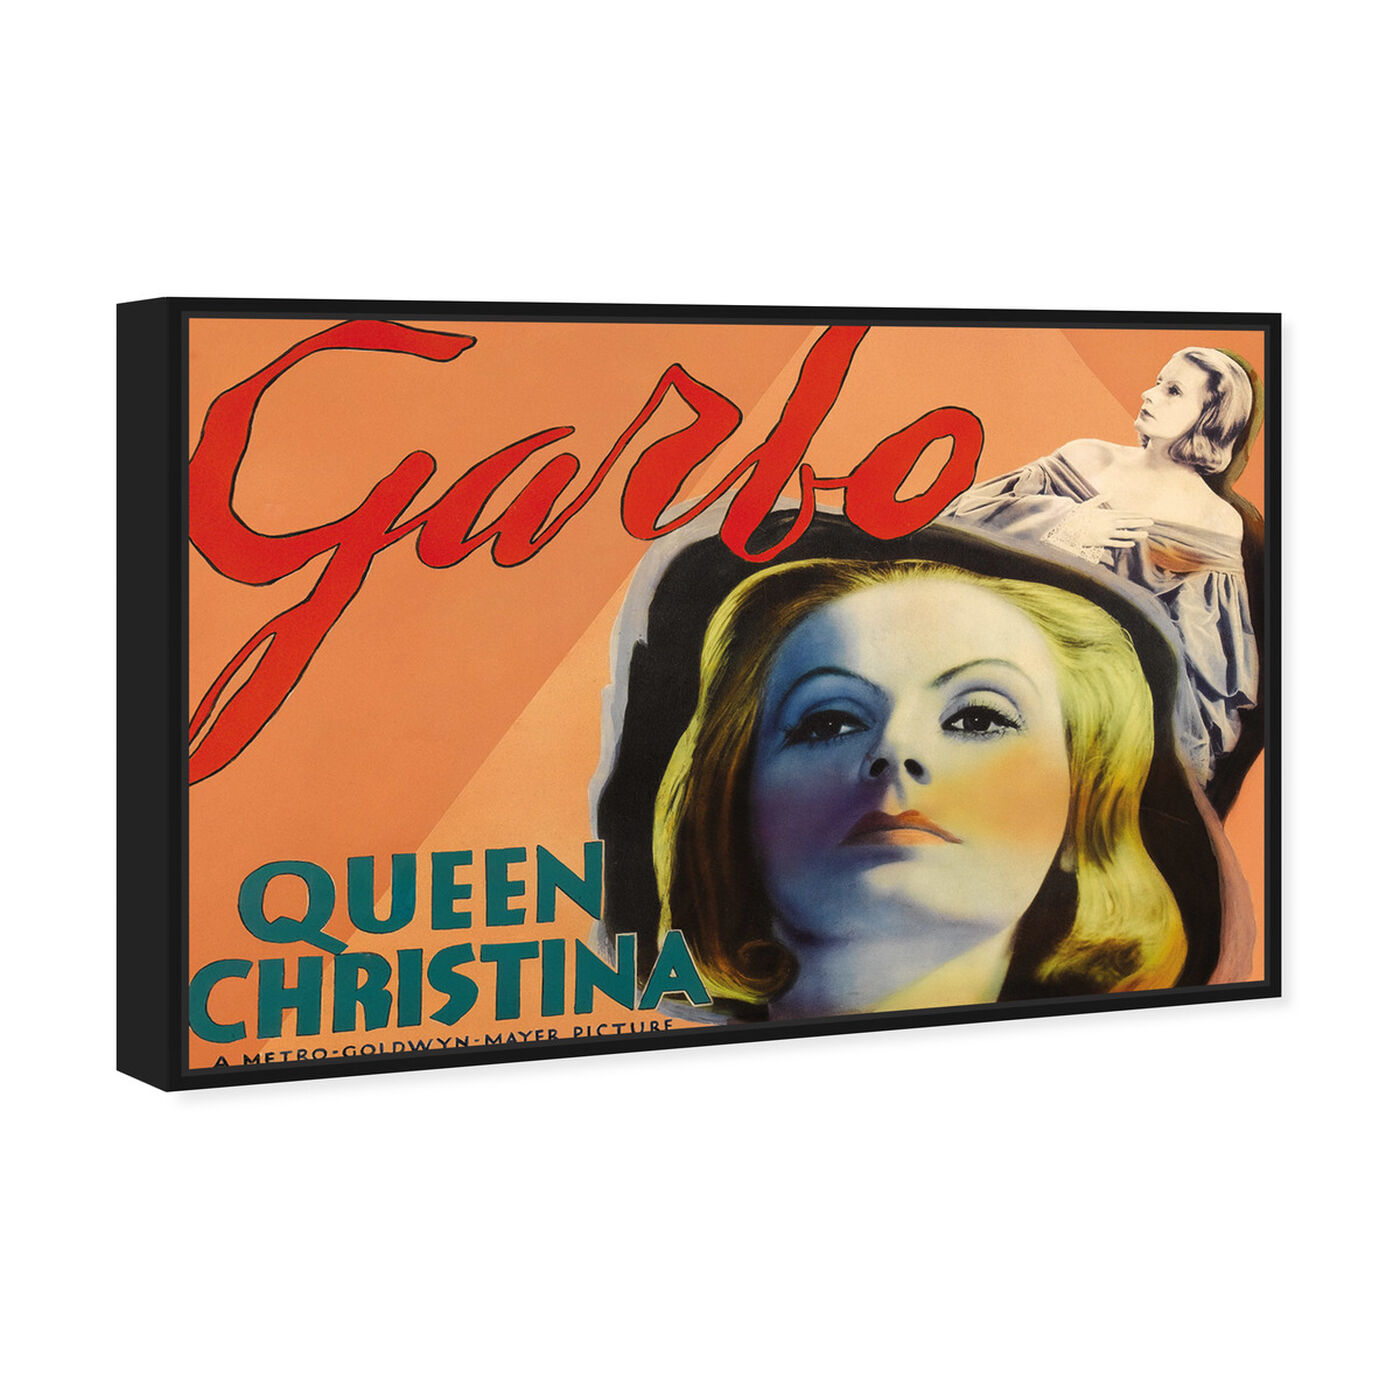 Angled view of Garbo featuring advertising and posters art.